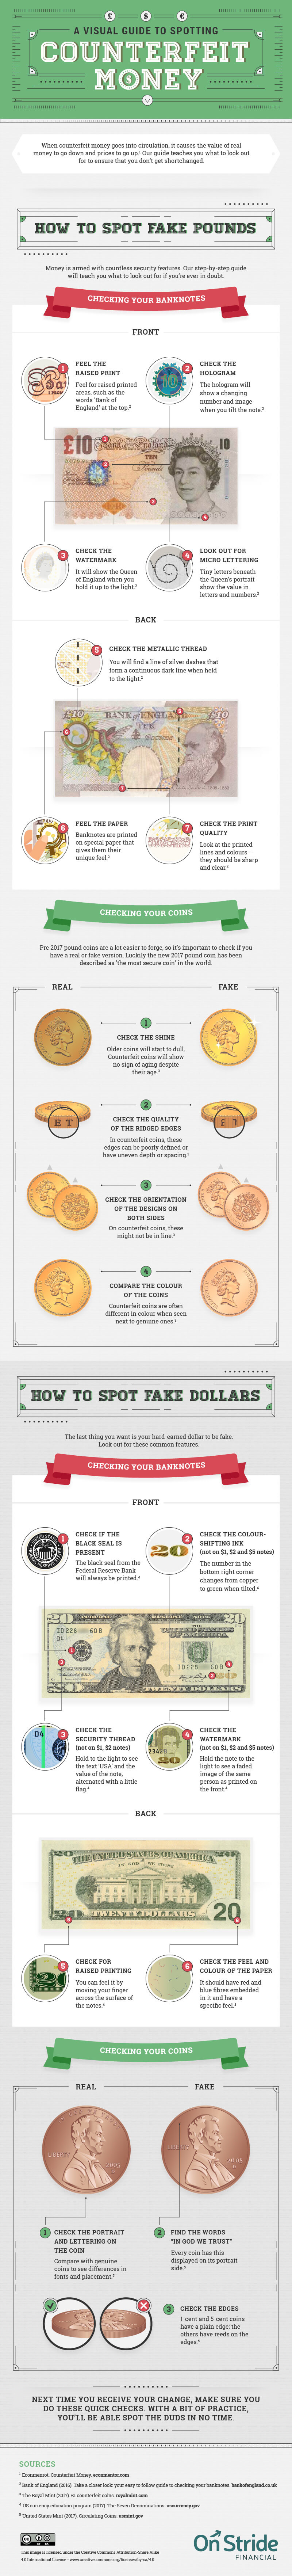 How To Spot Counterfeit Money: A Visual Guide